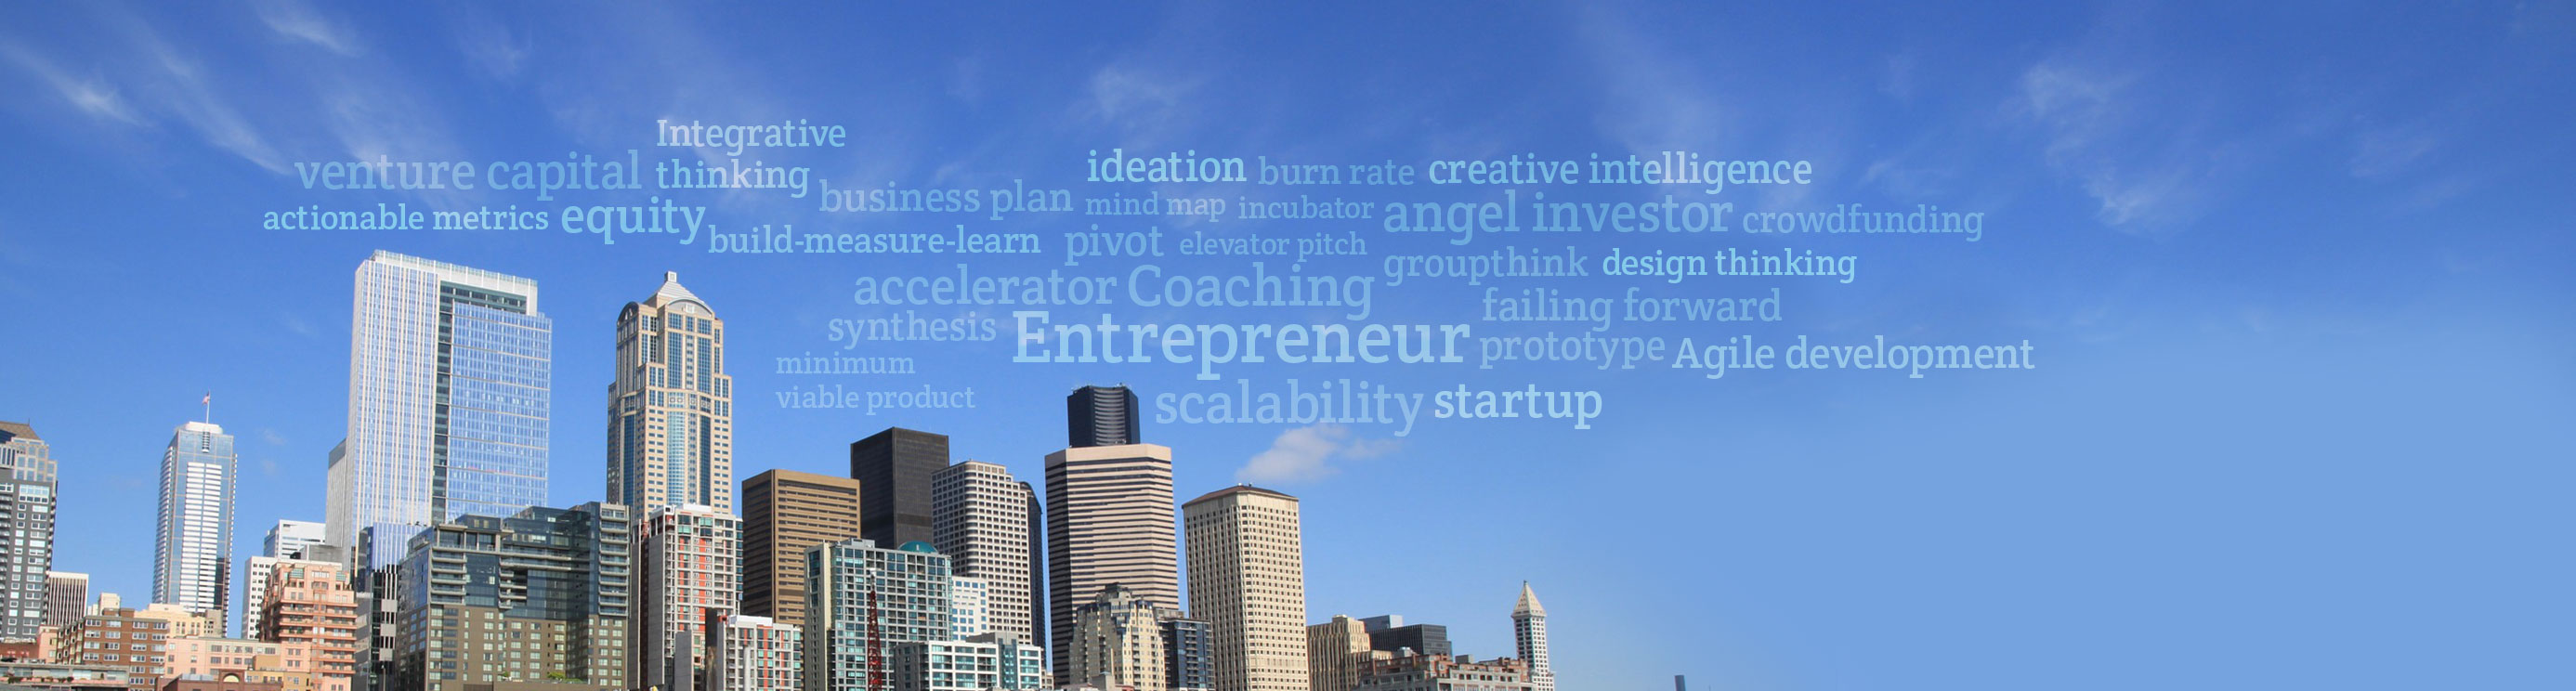 Accelement Seattle Cityscape with Entrepreneur and Startup Glossary